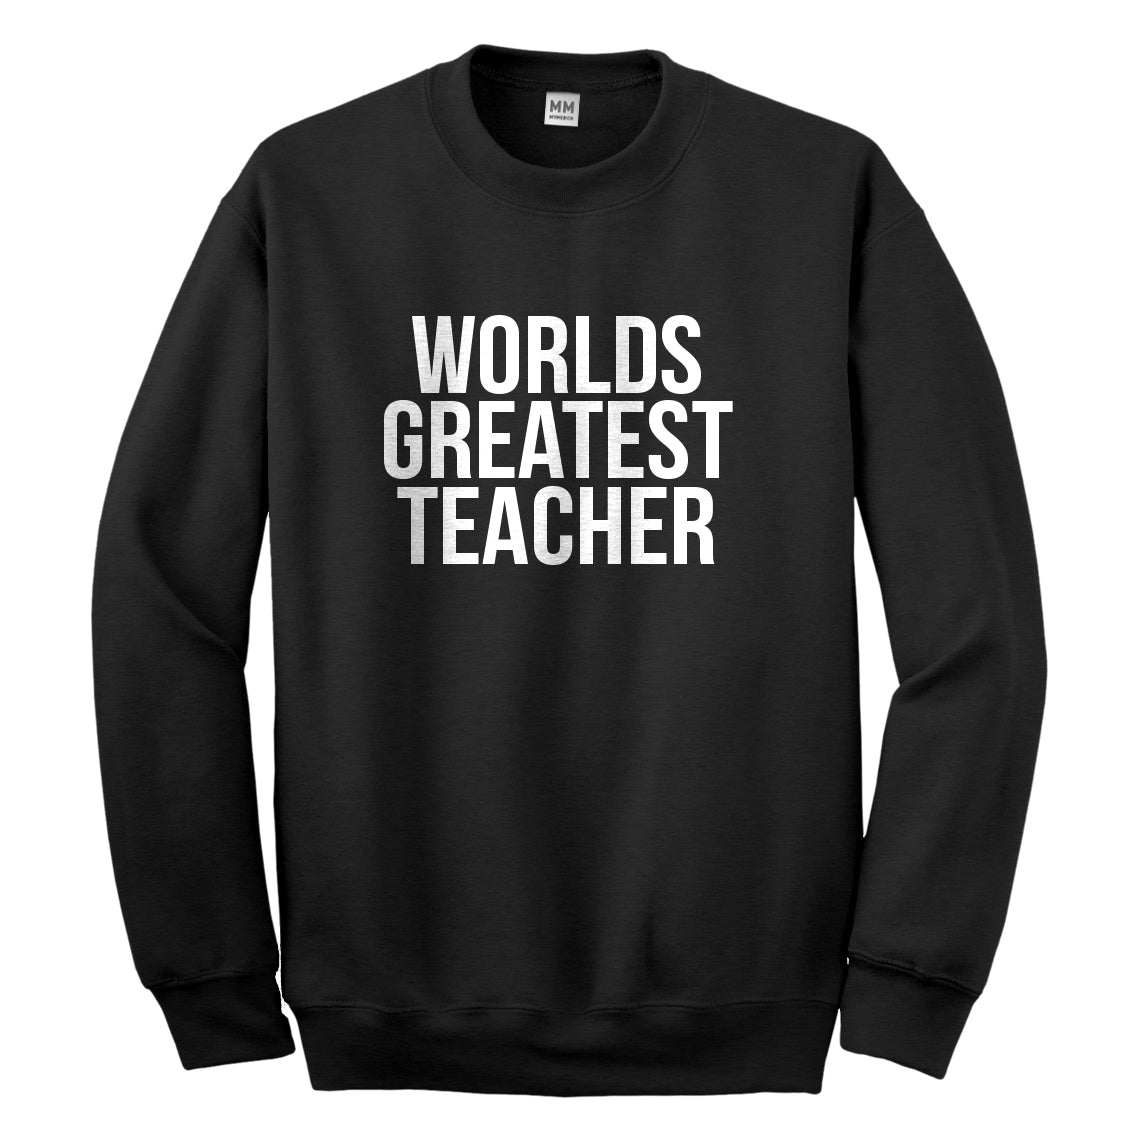 Crewneck Worlds Greatest Teacher Unisex Sweatshirt